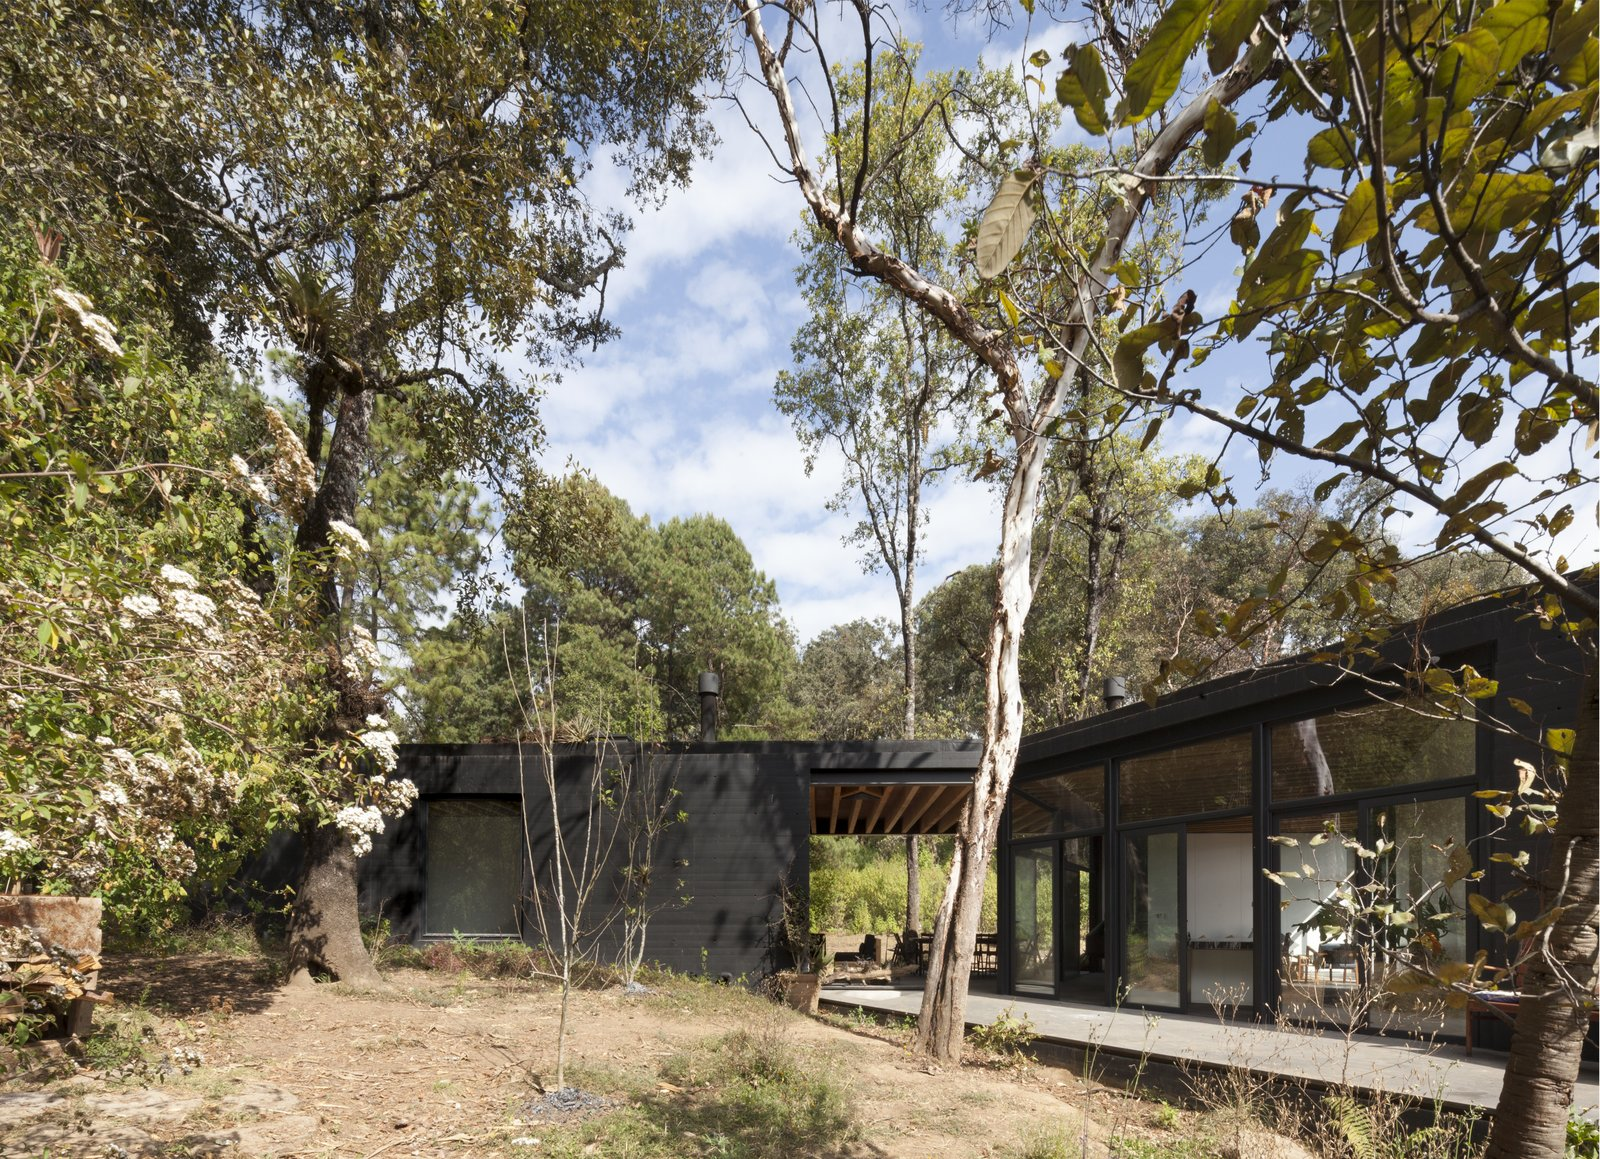 Exterior, Concrete Siding Material, House Building Type, Flat RoofLine, and Green Roof Material Glazed walls allow the interior living areas to be seamlessly connected to the outdoors.  Photos from Upcycled Trees Cloak This Modern Mexican Home